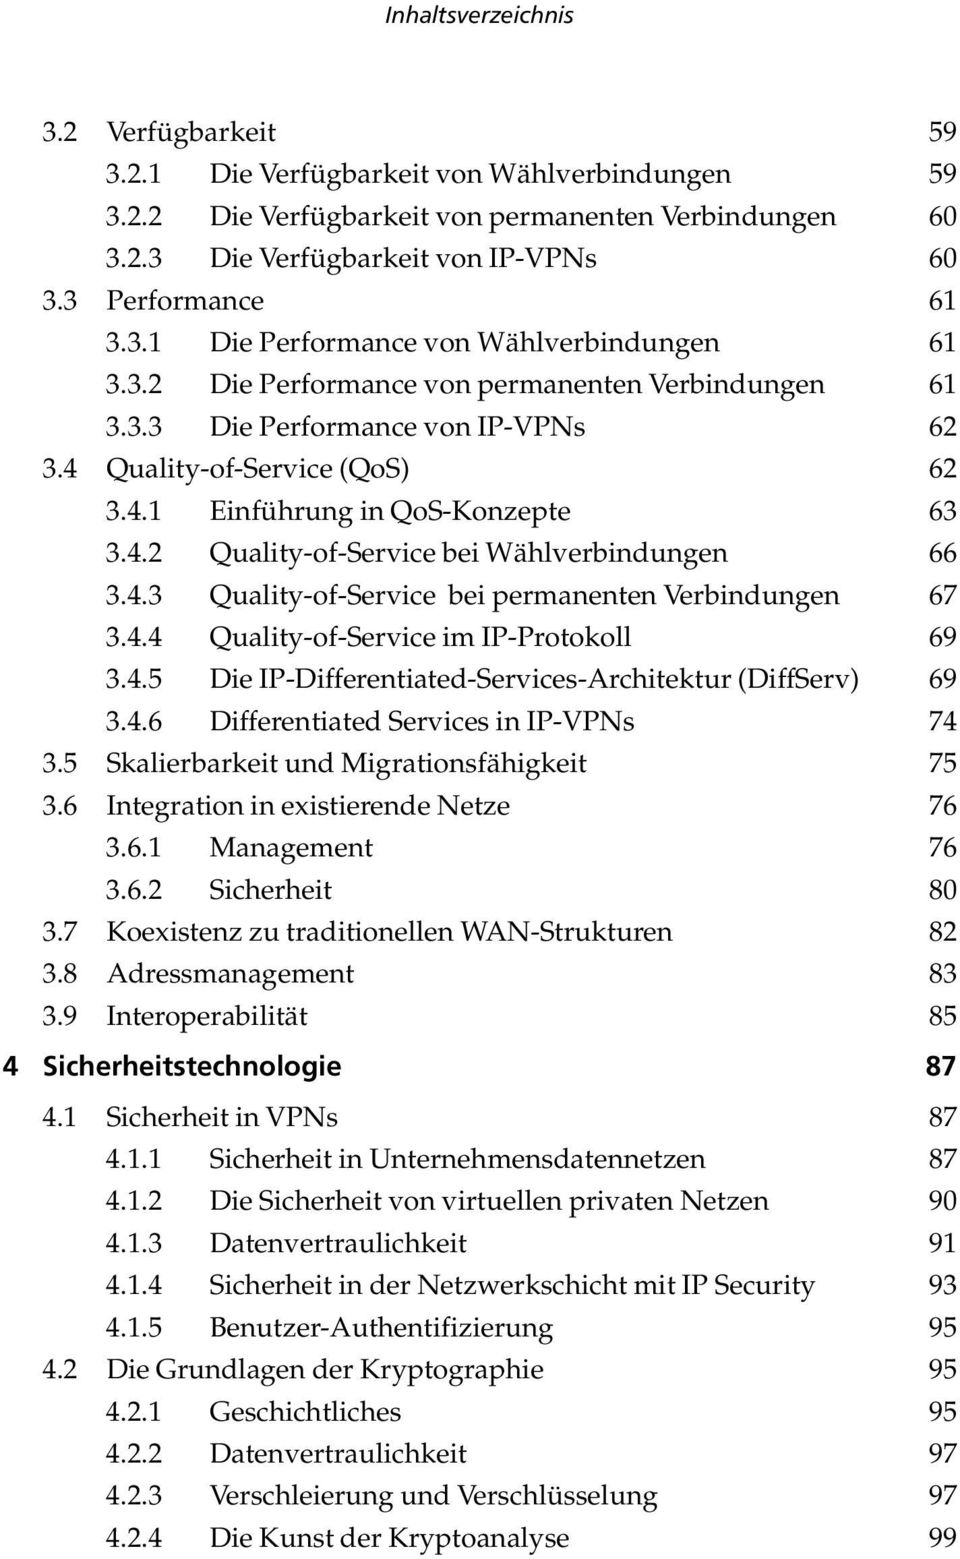 4.2 Quality-of-Service bei Wählverbindungen 66 3.4.3 Quality-of-Service bei permanenten Verbindungen 67 3.4.4 Quality-of-Service im IP-Protokoll 69 3.4.5 Die IP-Differentiated-Services-Architektur (DiffServ) 69 3.